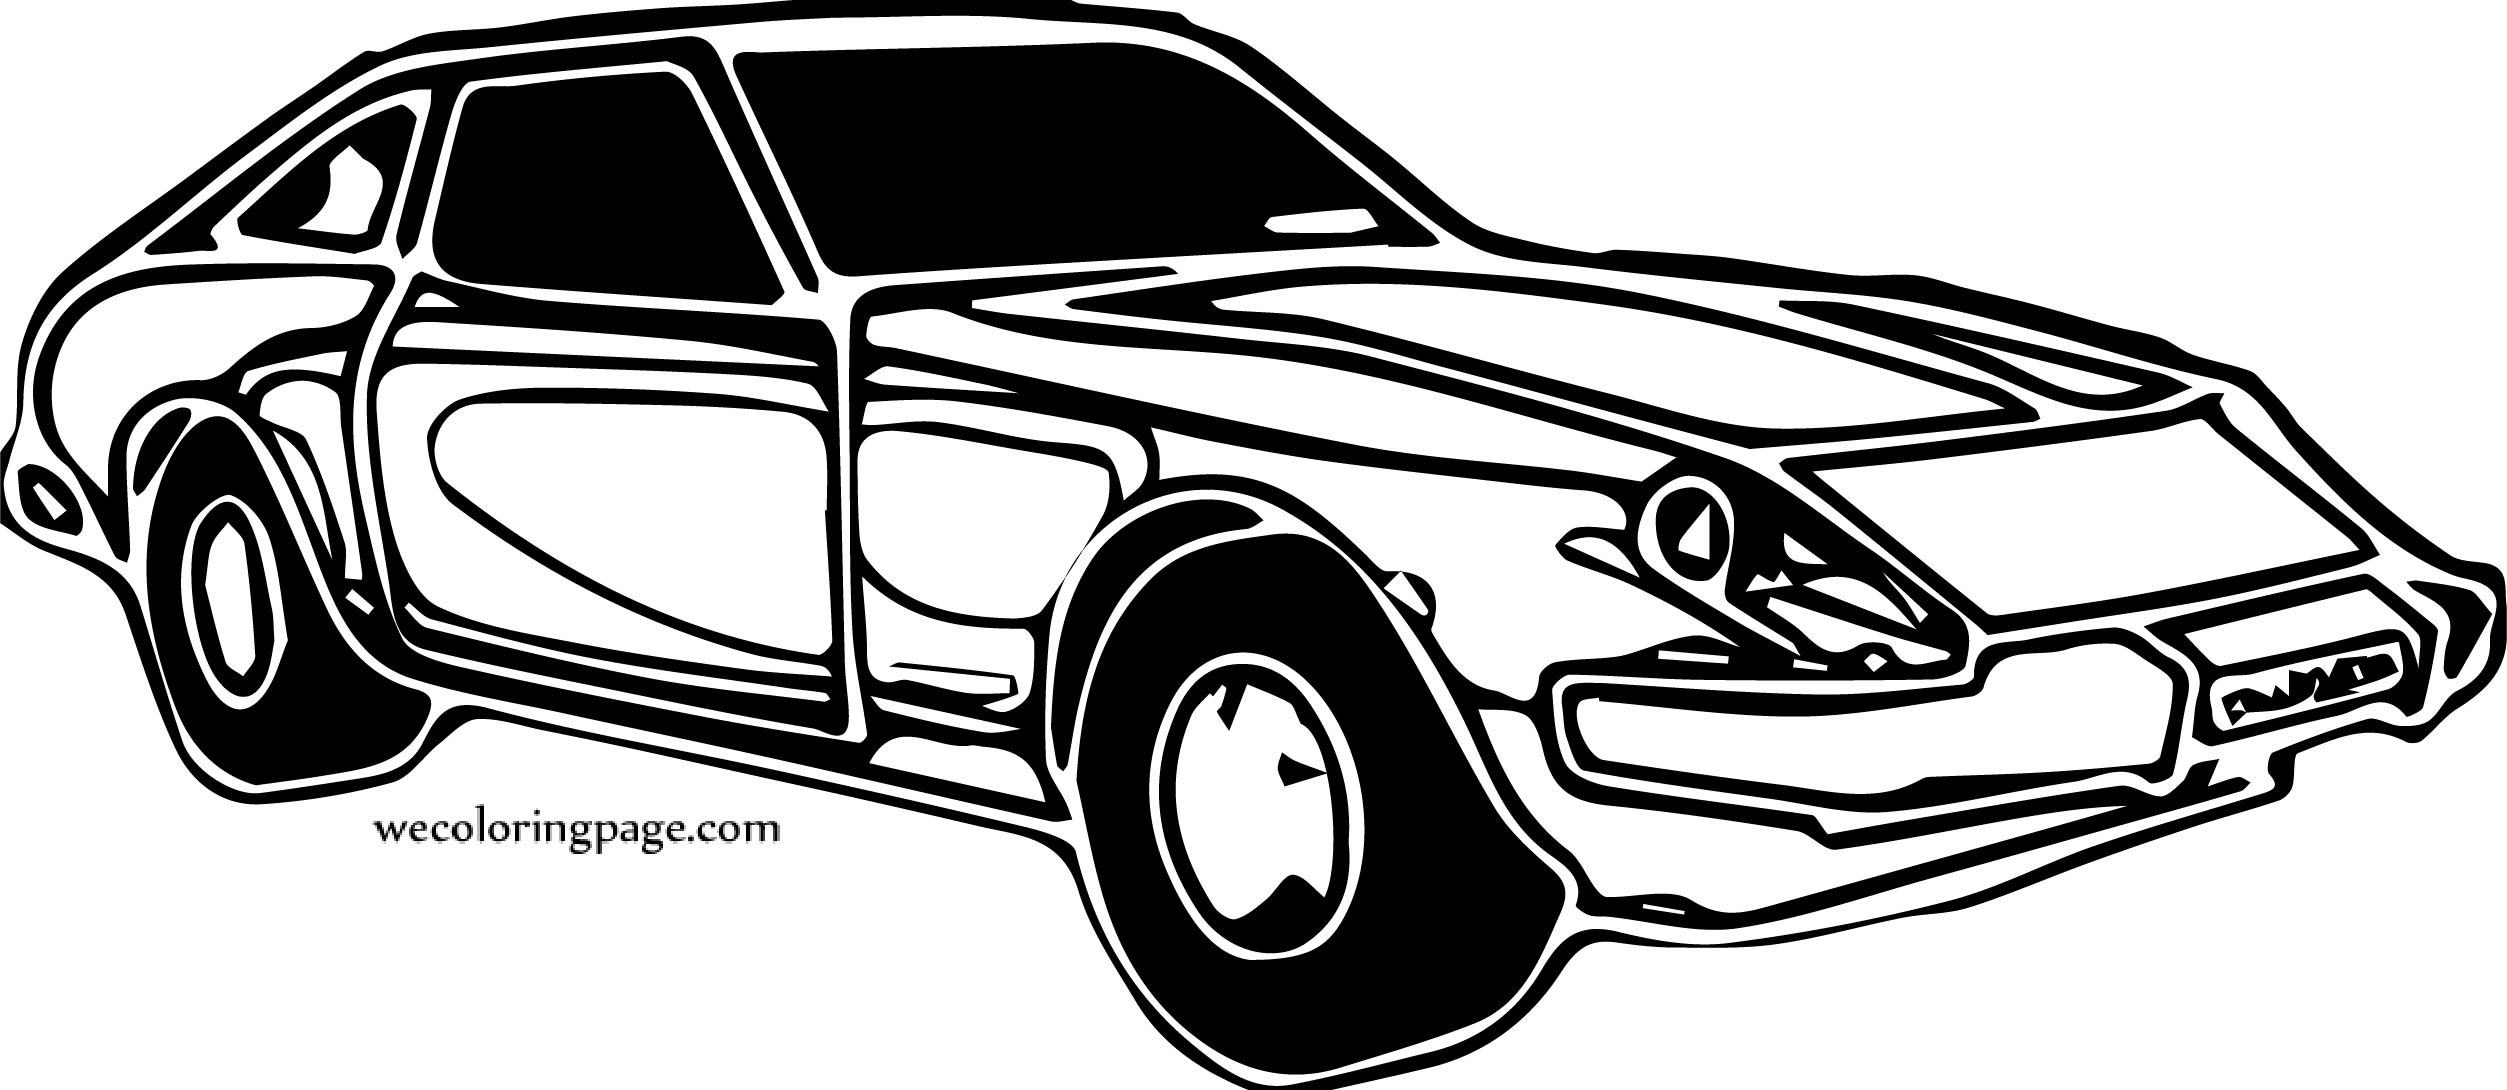 One A Car Coloring Page